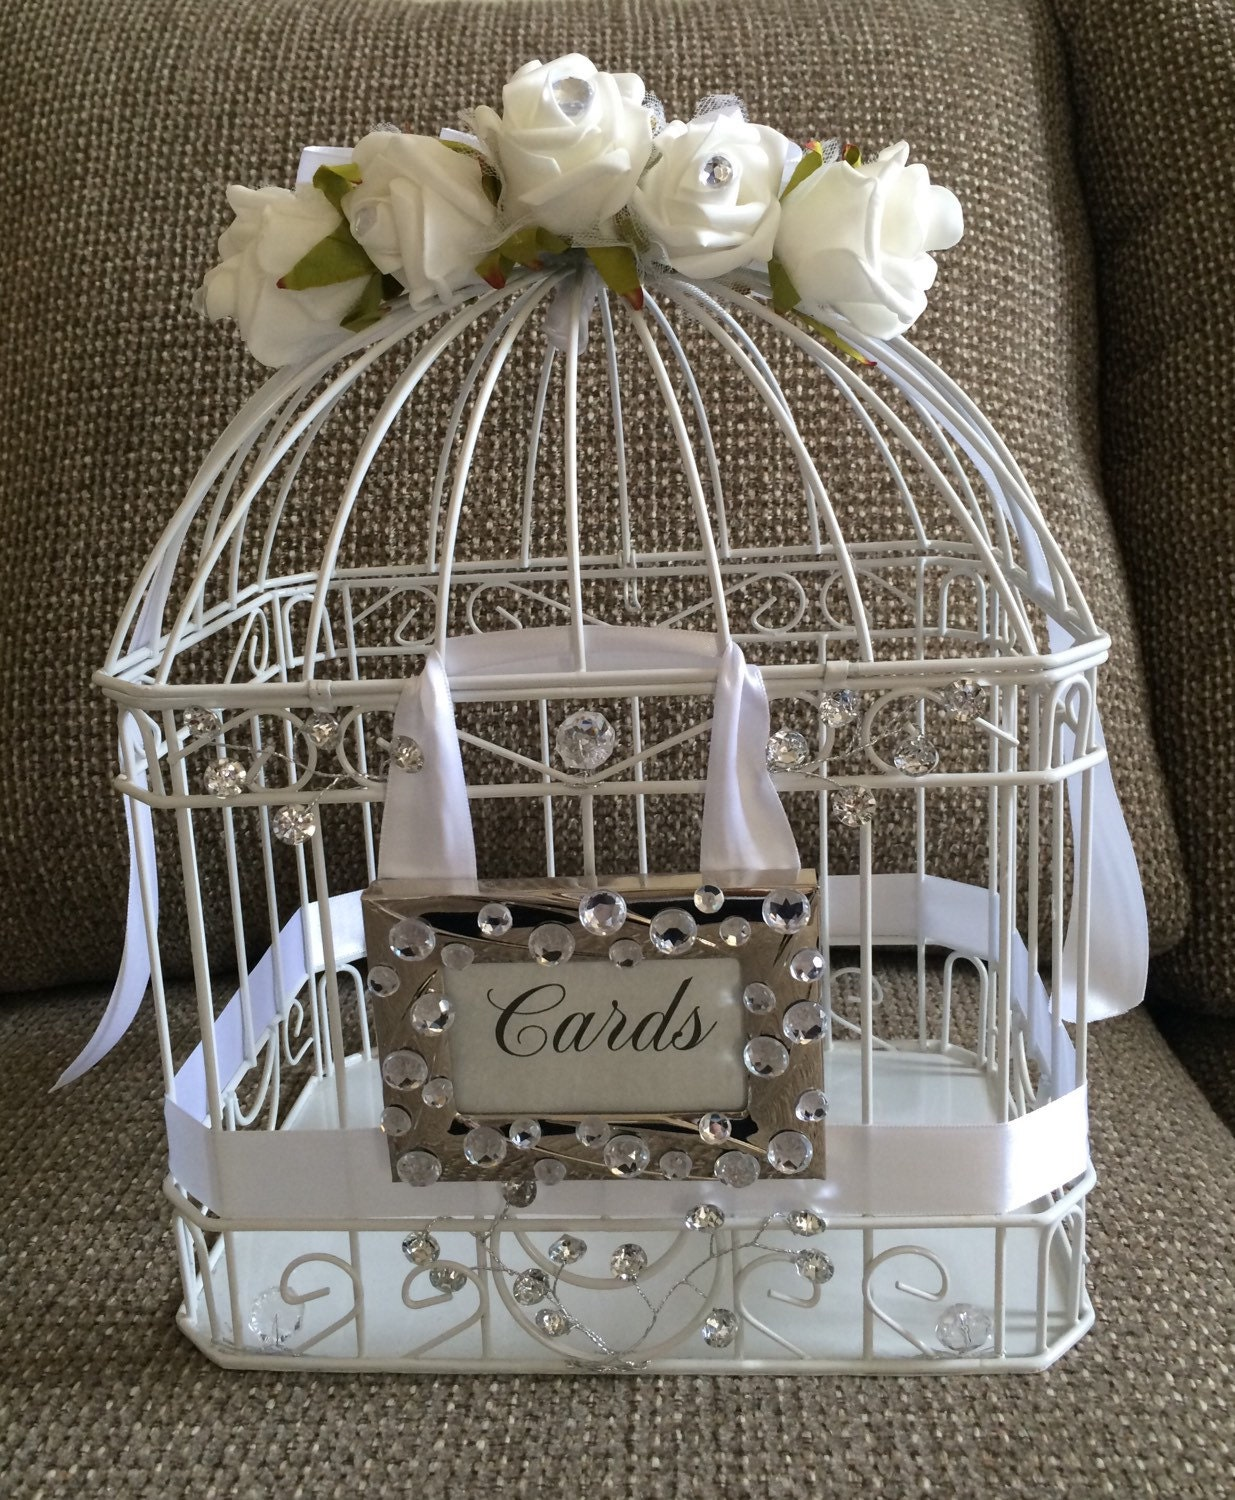 Wedding Gift Card Cage : Bling Wedding Cage Gift Card Holder by CustombytheHeart on Etsy